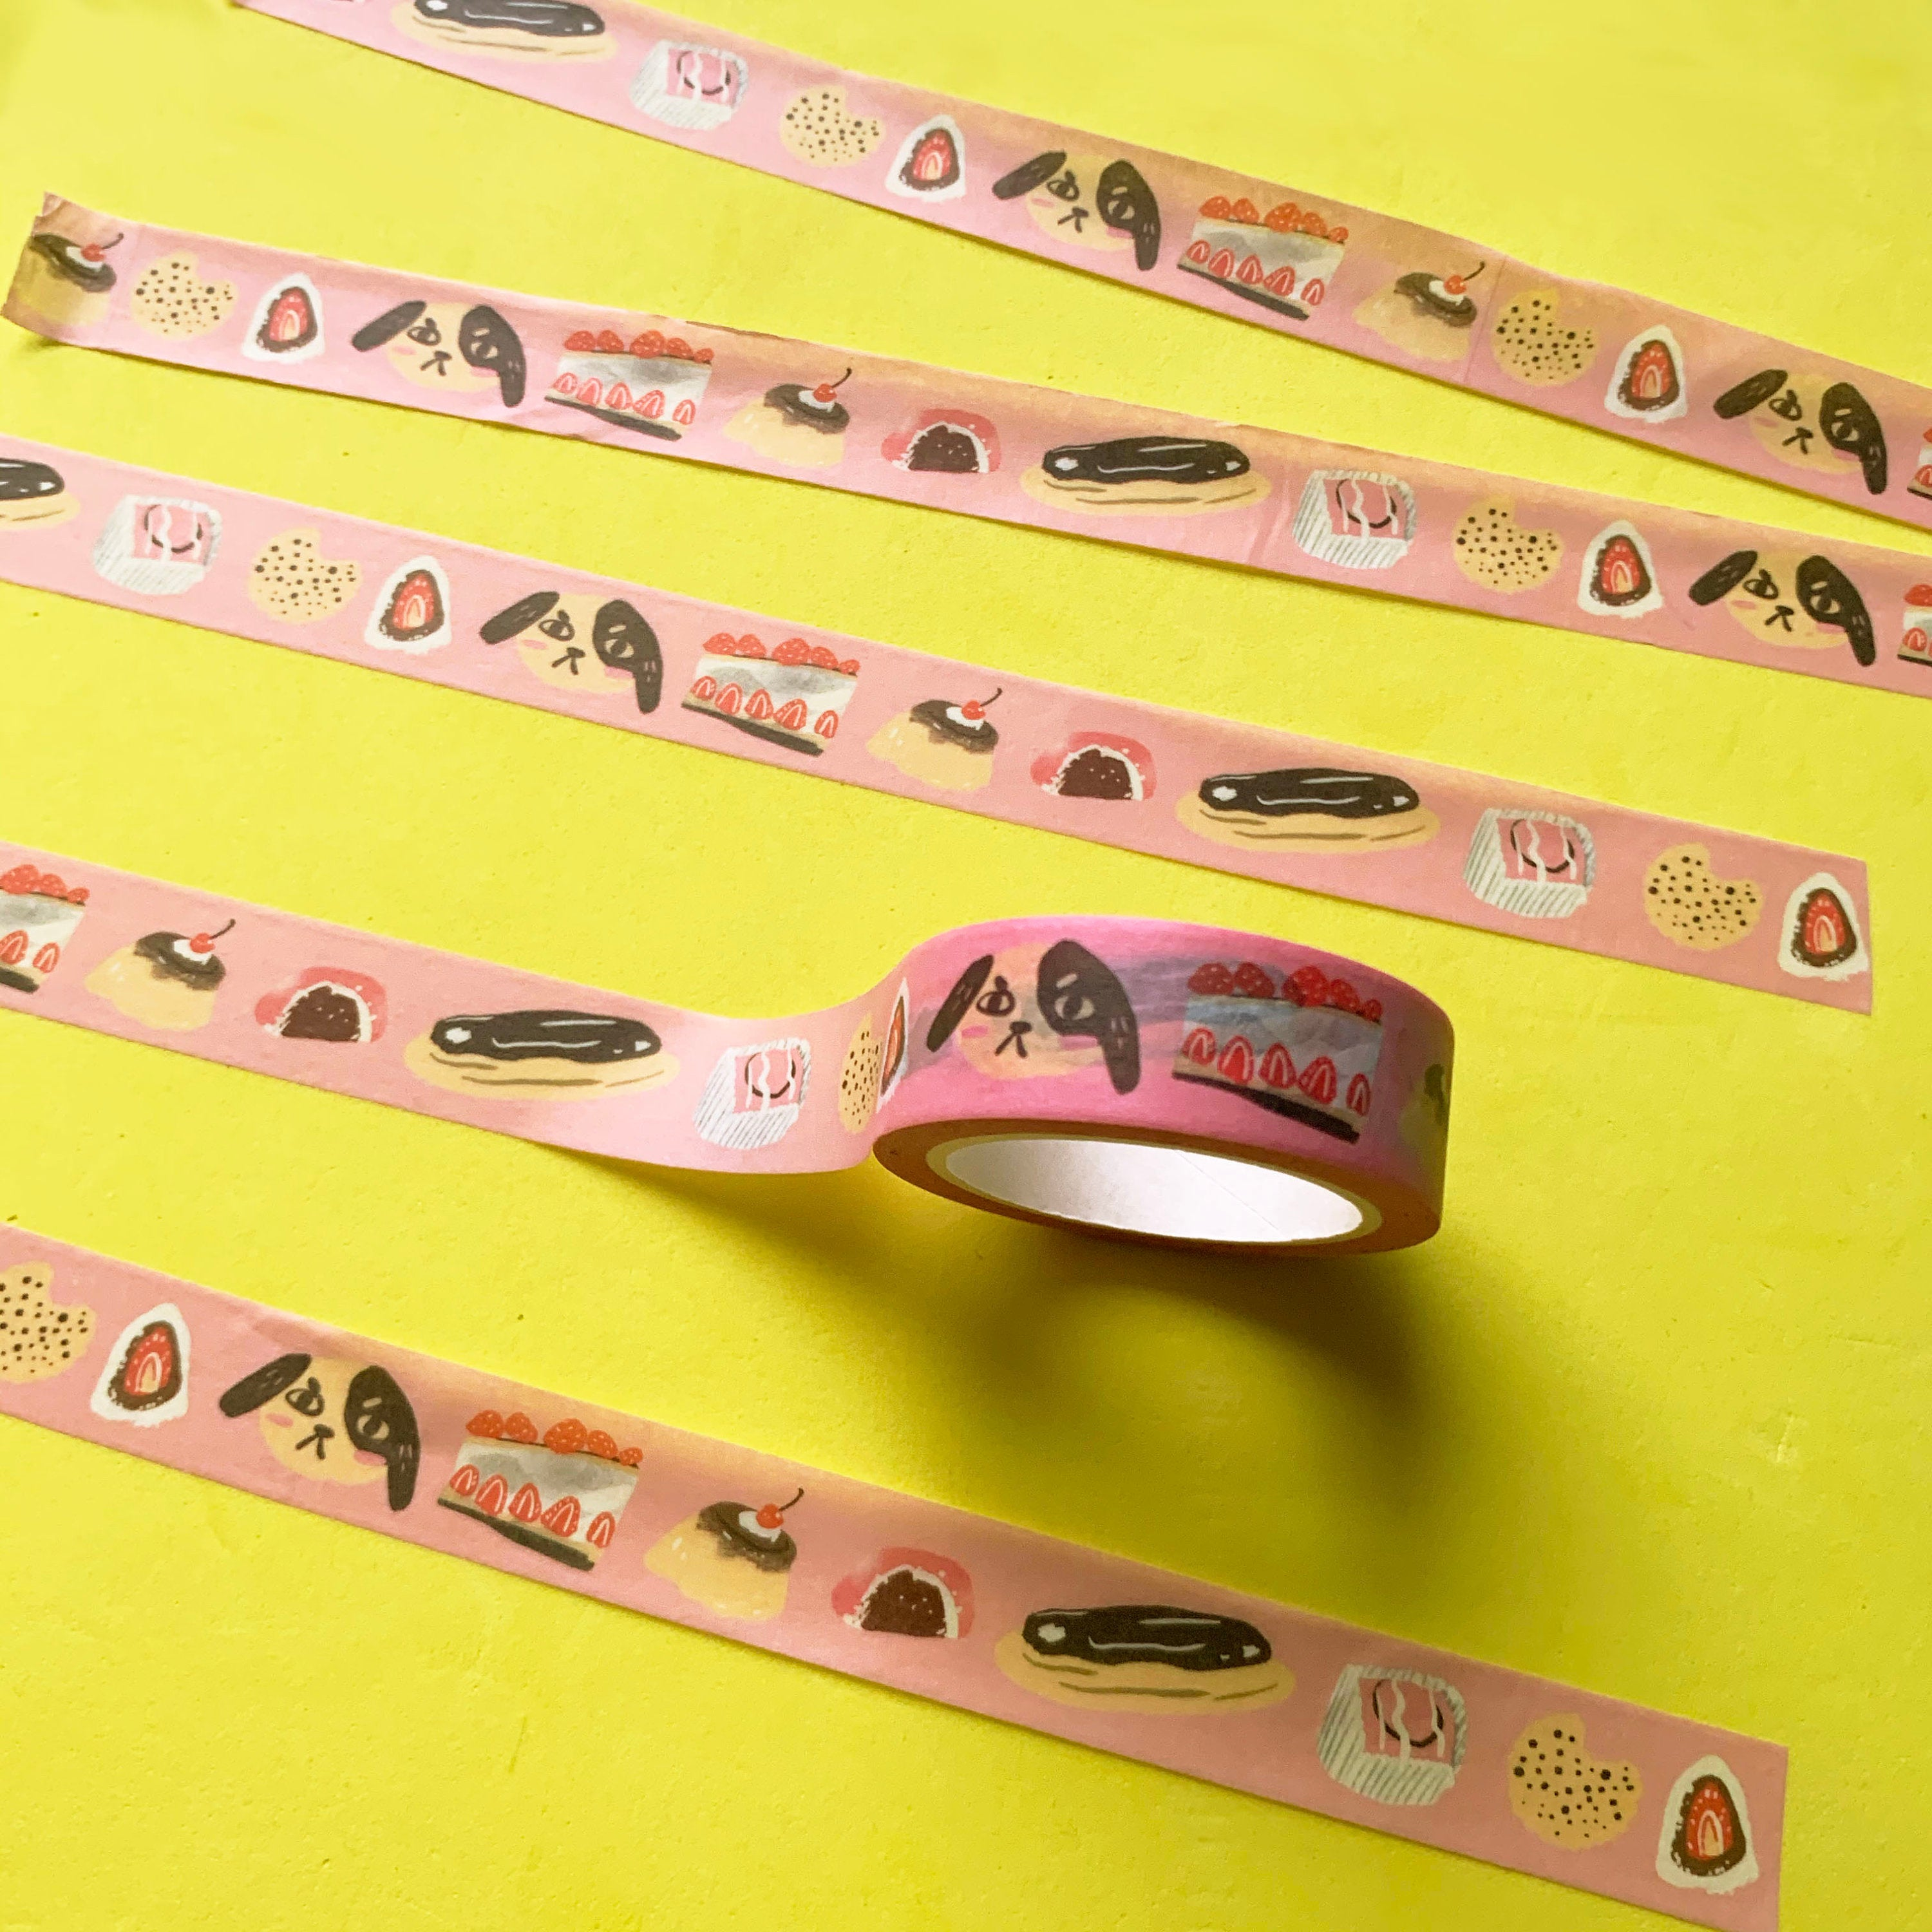 Image of a roll of paper washi tape against a yellow background. It depicts a cute dog with an angry face and a repeat pattern of desserts such as an eclair, cake, pudding, cookie, french fancy and mochi. It is printed onto a pink background.